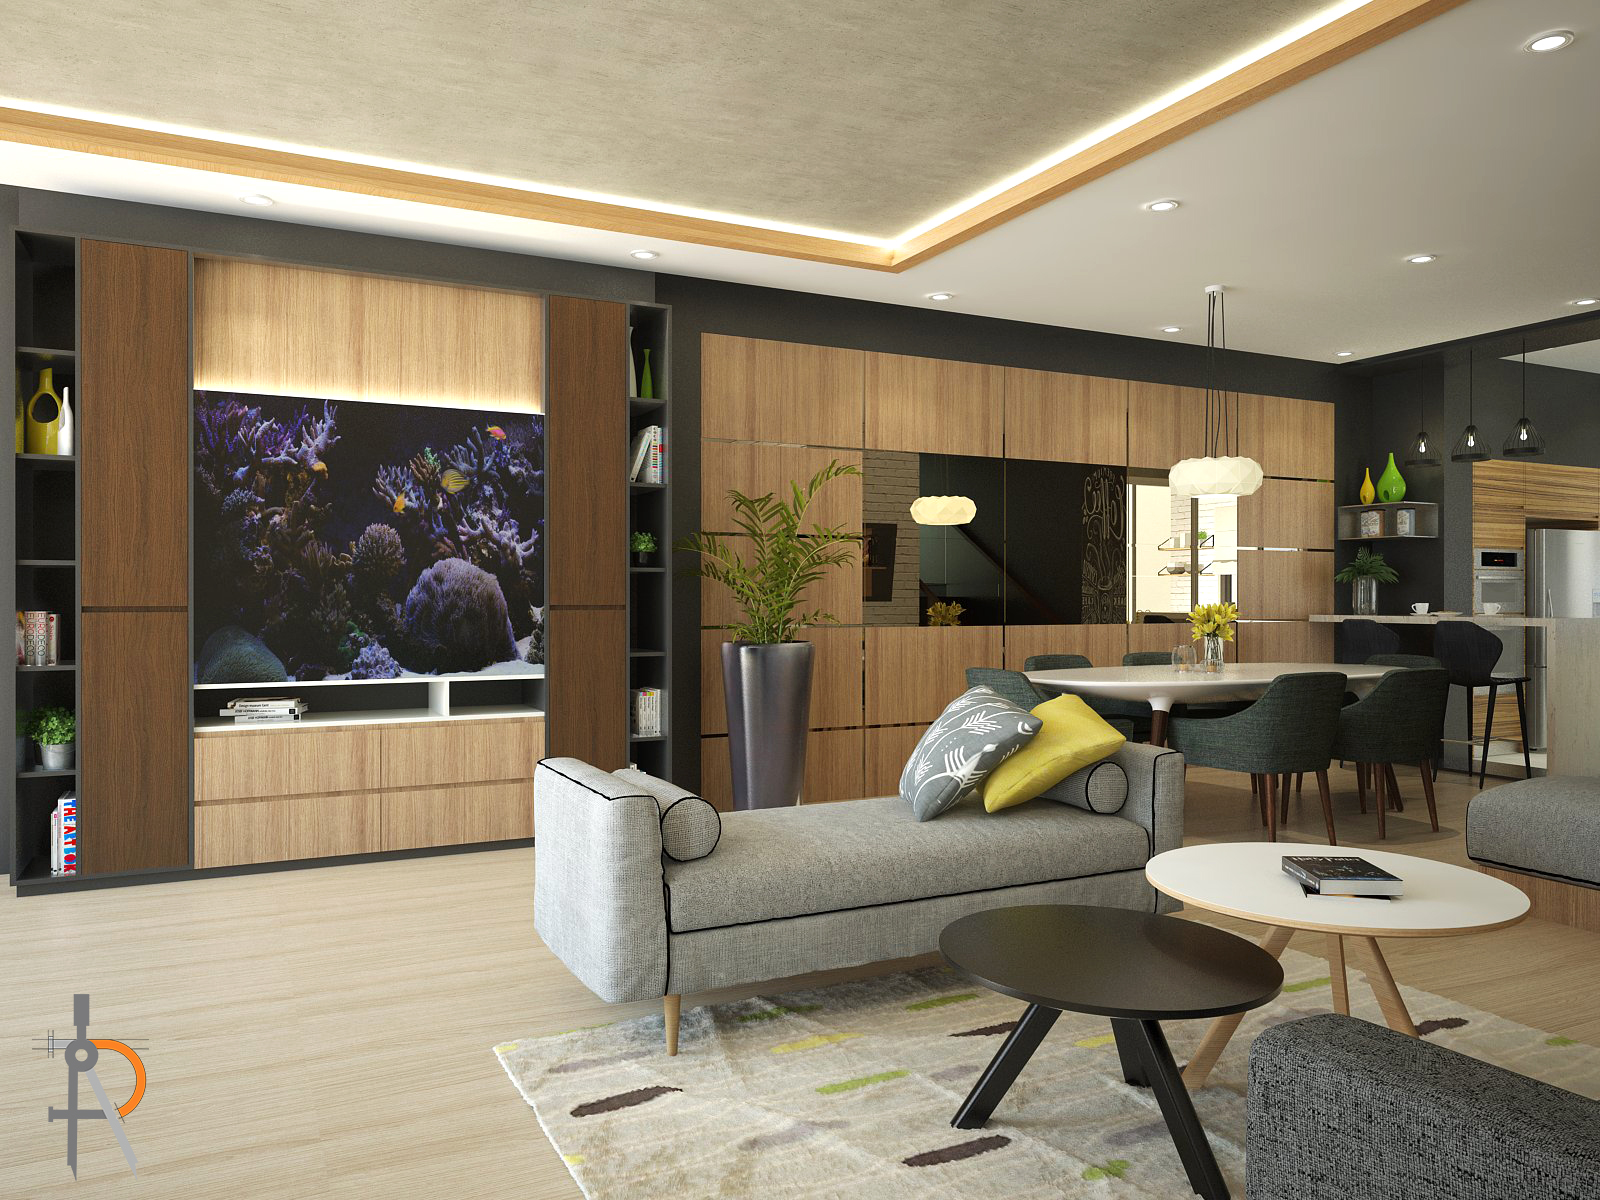 70 Interior Design Freelance Jobs Malaysia This Image Has Been Resizedclick To View